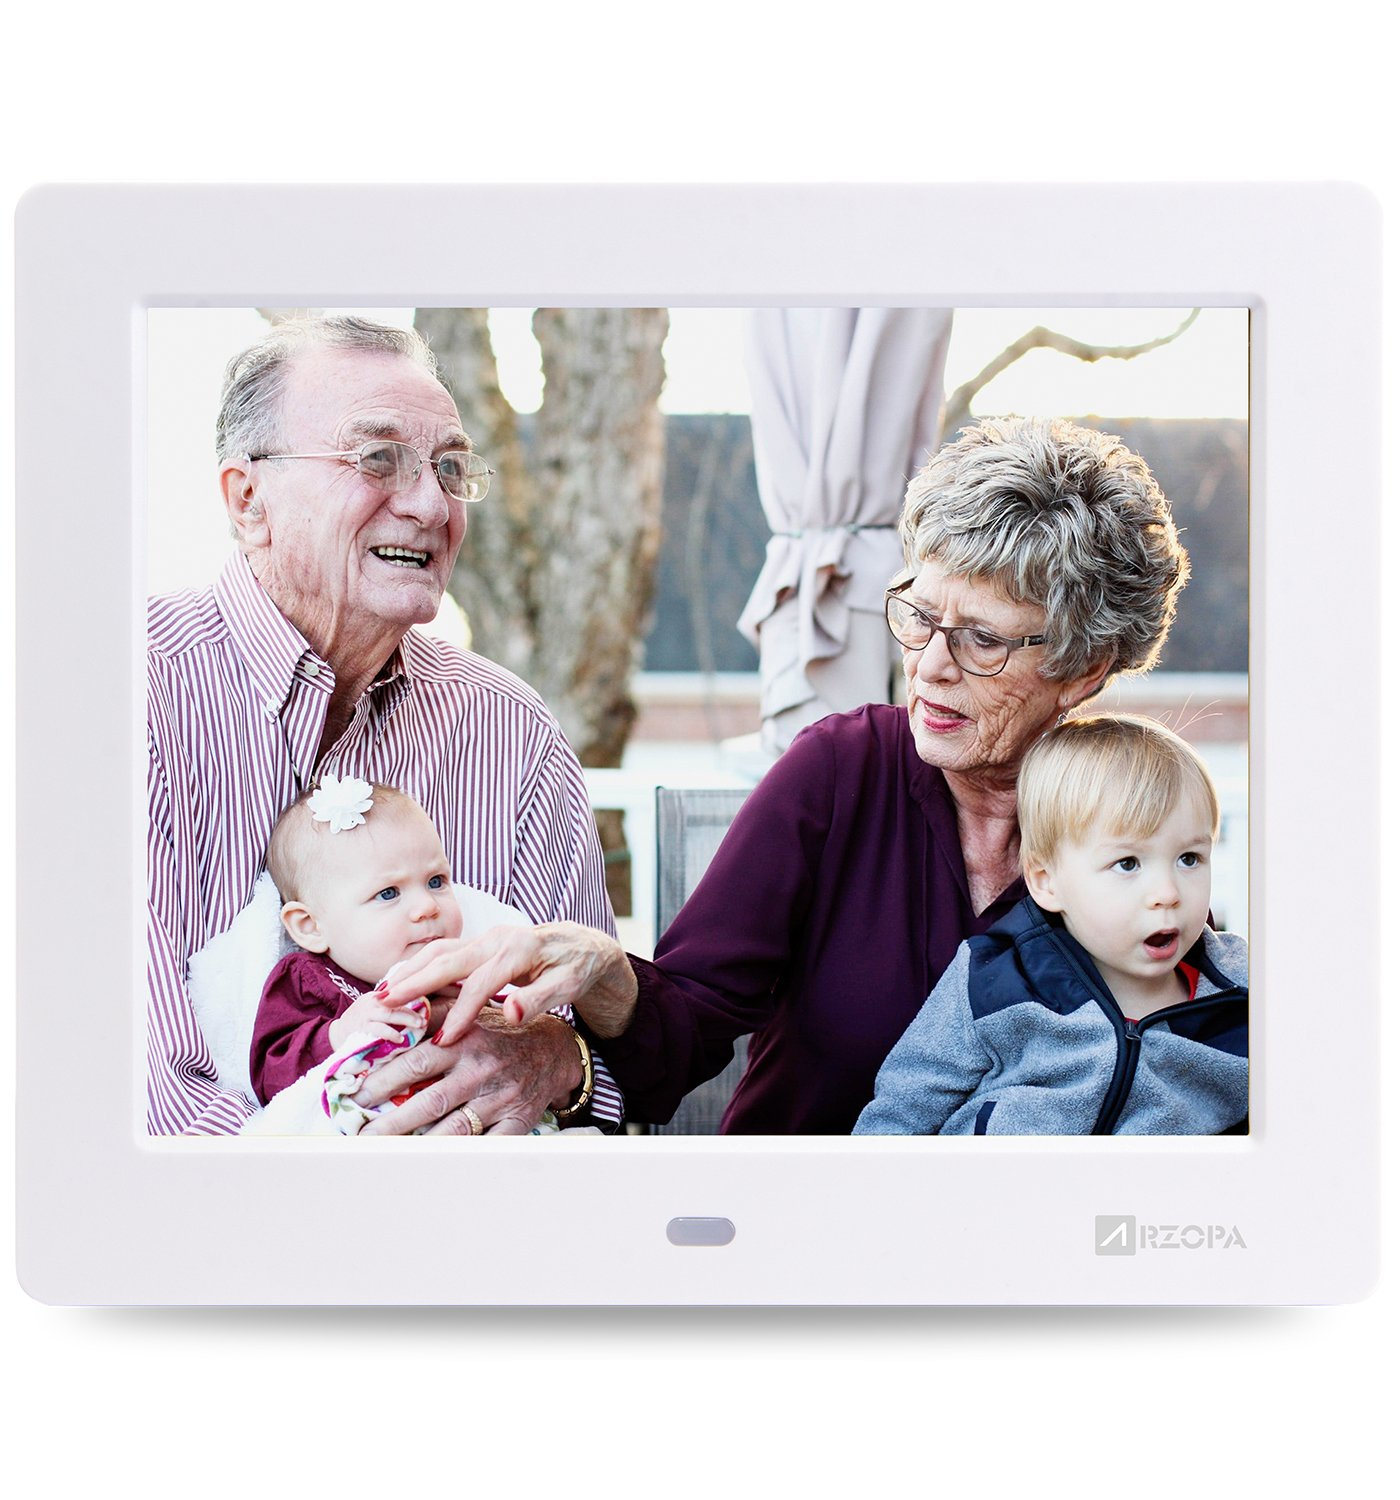 Arzopa 8 Inch Digital Photo Frame HD IPS Widescreen Picture Frame Support MP3 MP4 Video Player with Calendar Function and Remote Control White by Arzopa